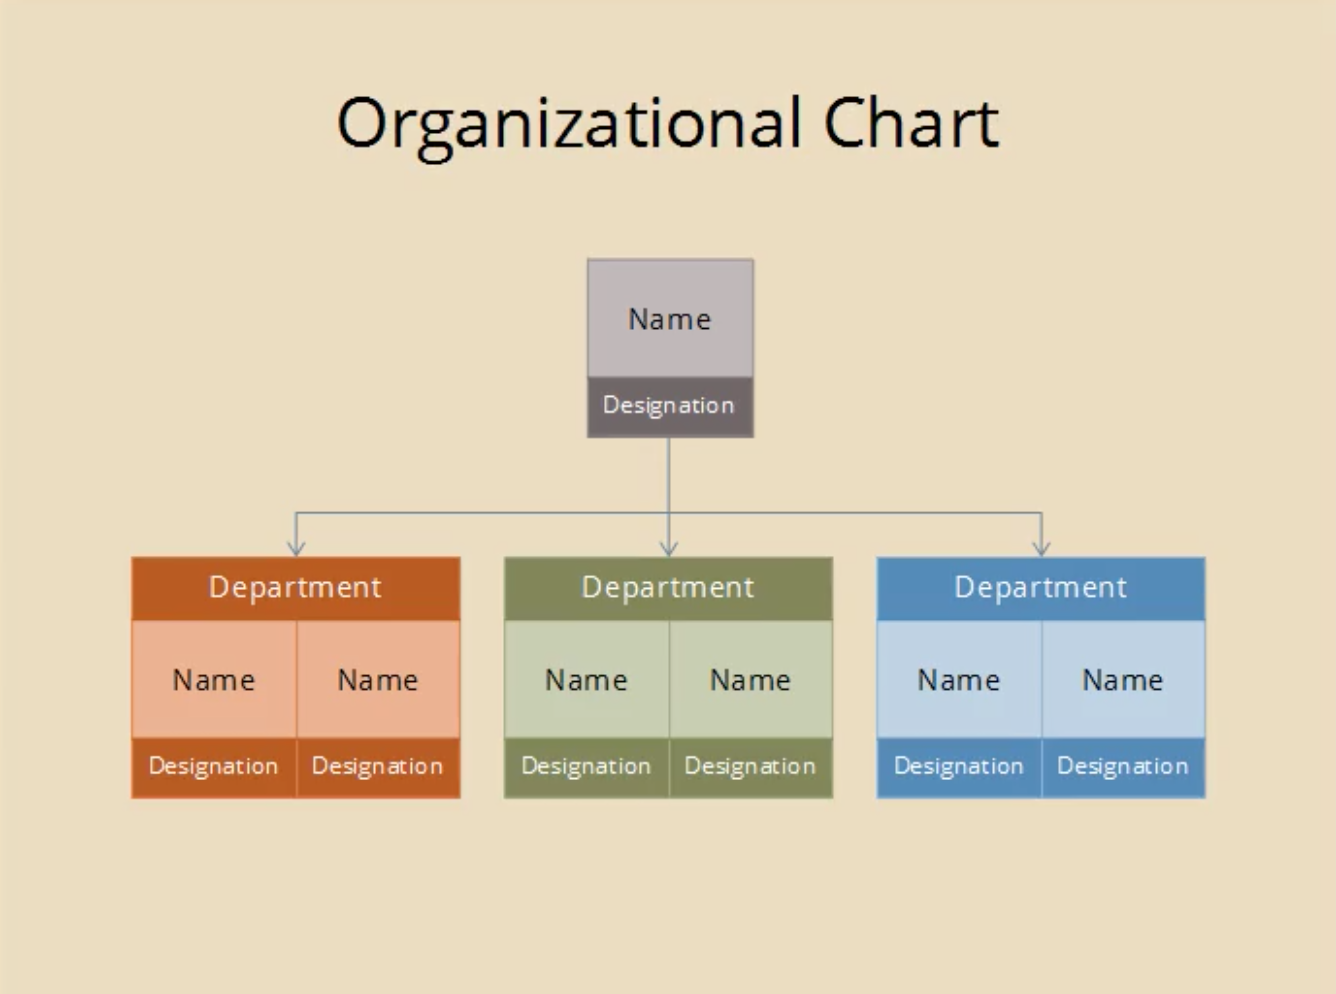 example of using tables in Storyline to structure an org chart